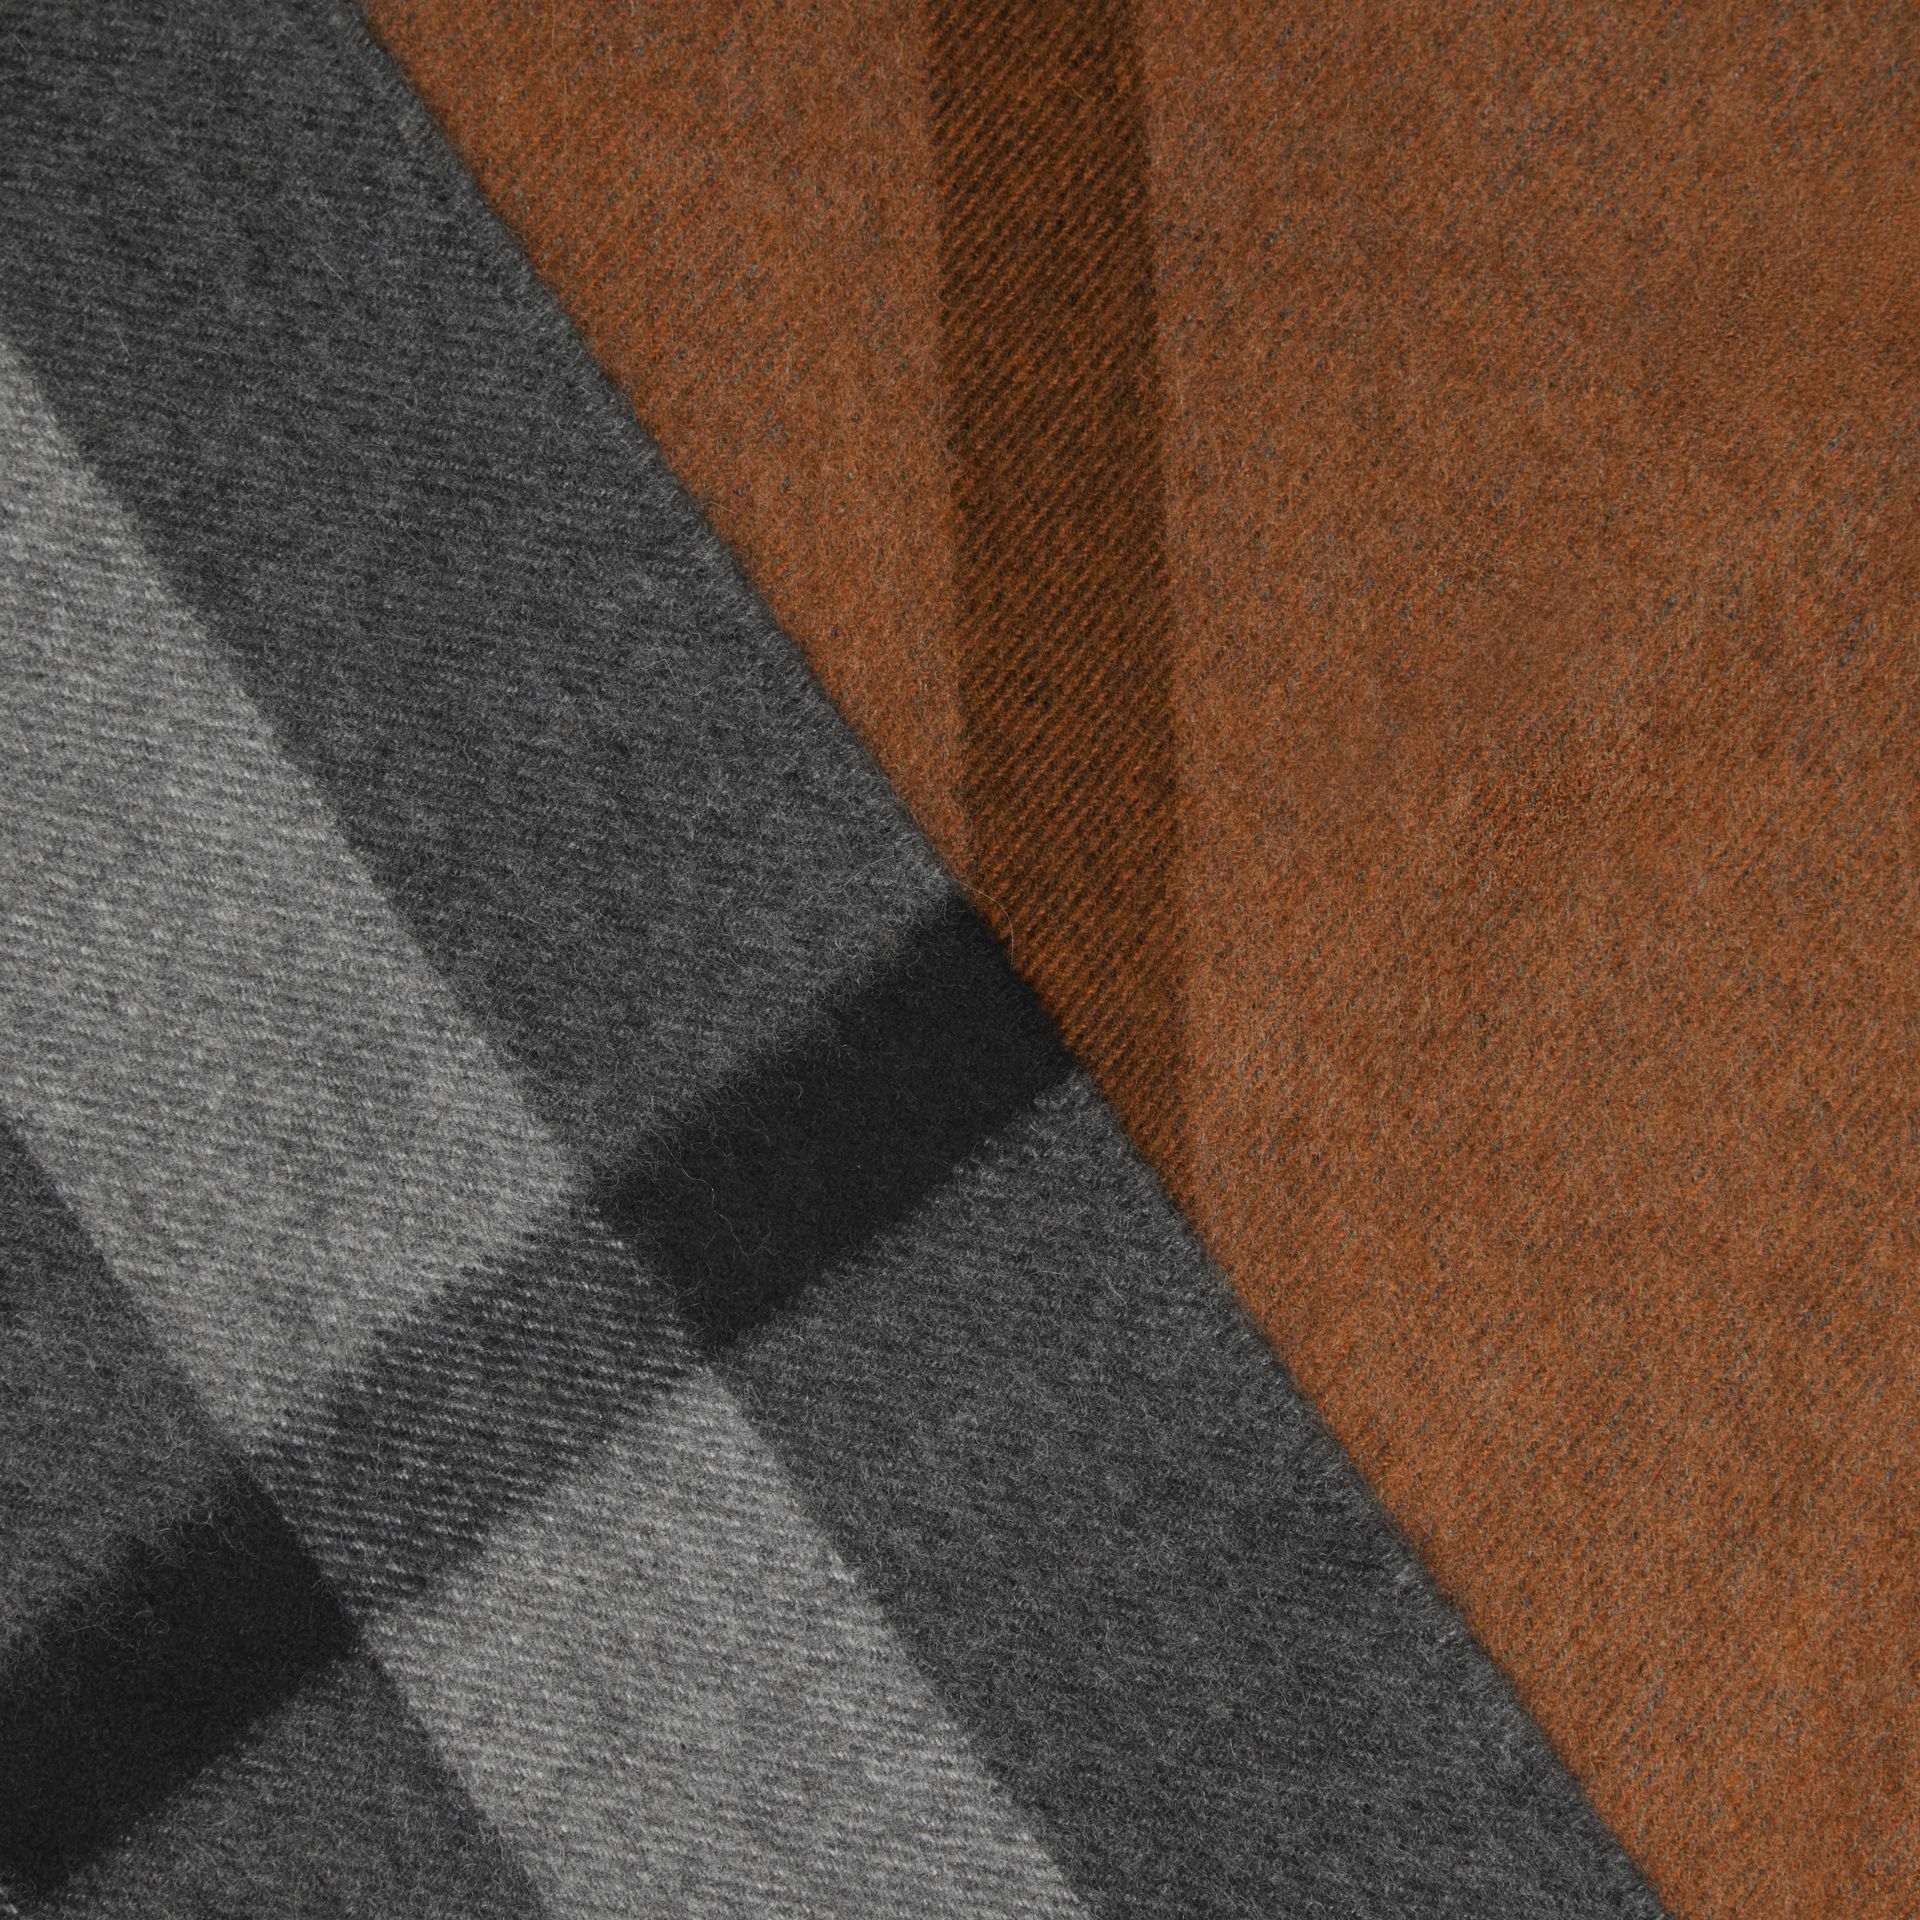 Colour Block Check Cashmere Scarf in Toffee | Burberry Canada - gallery image 1